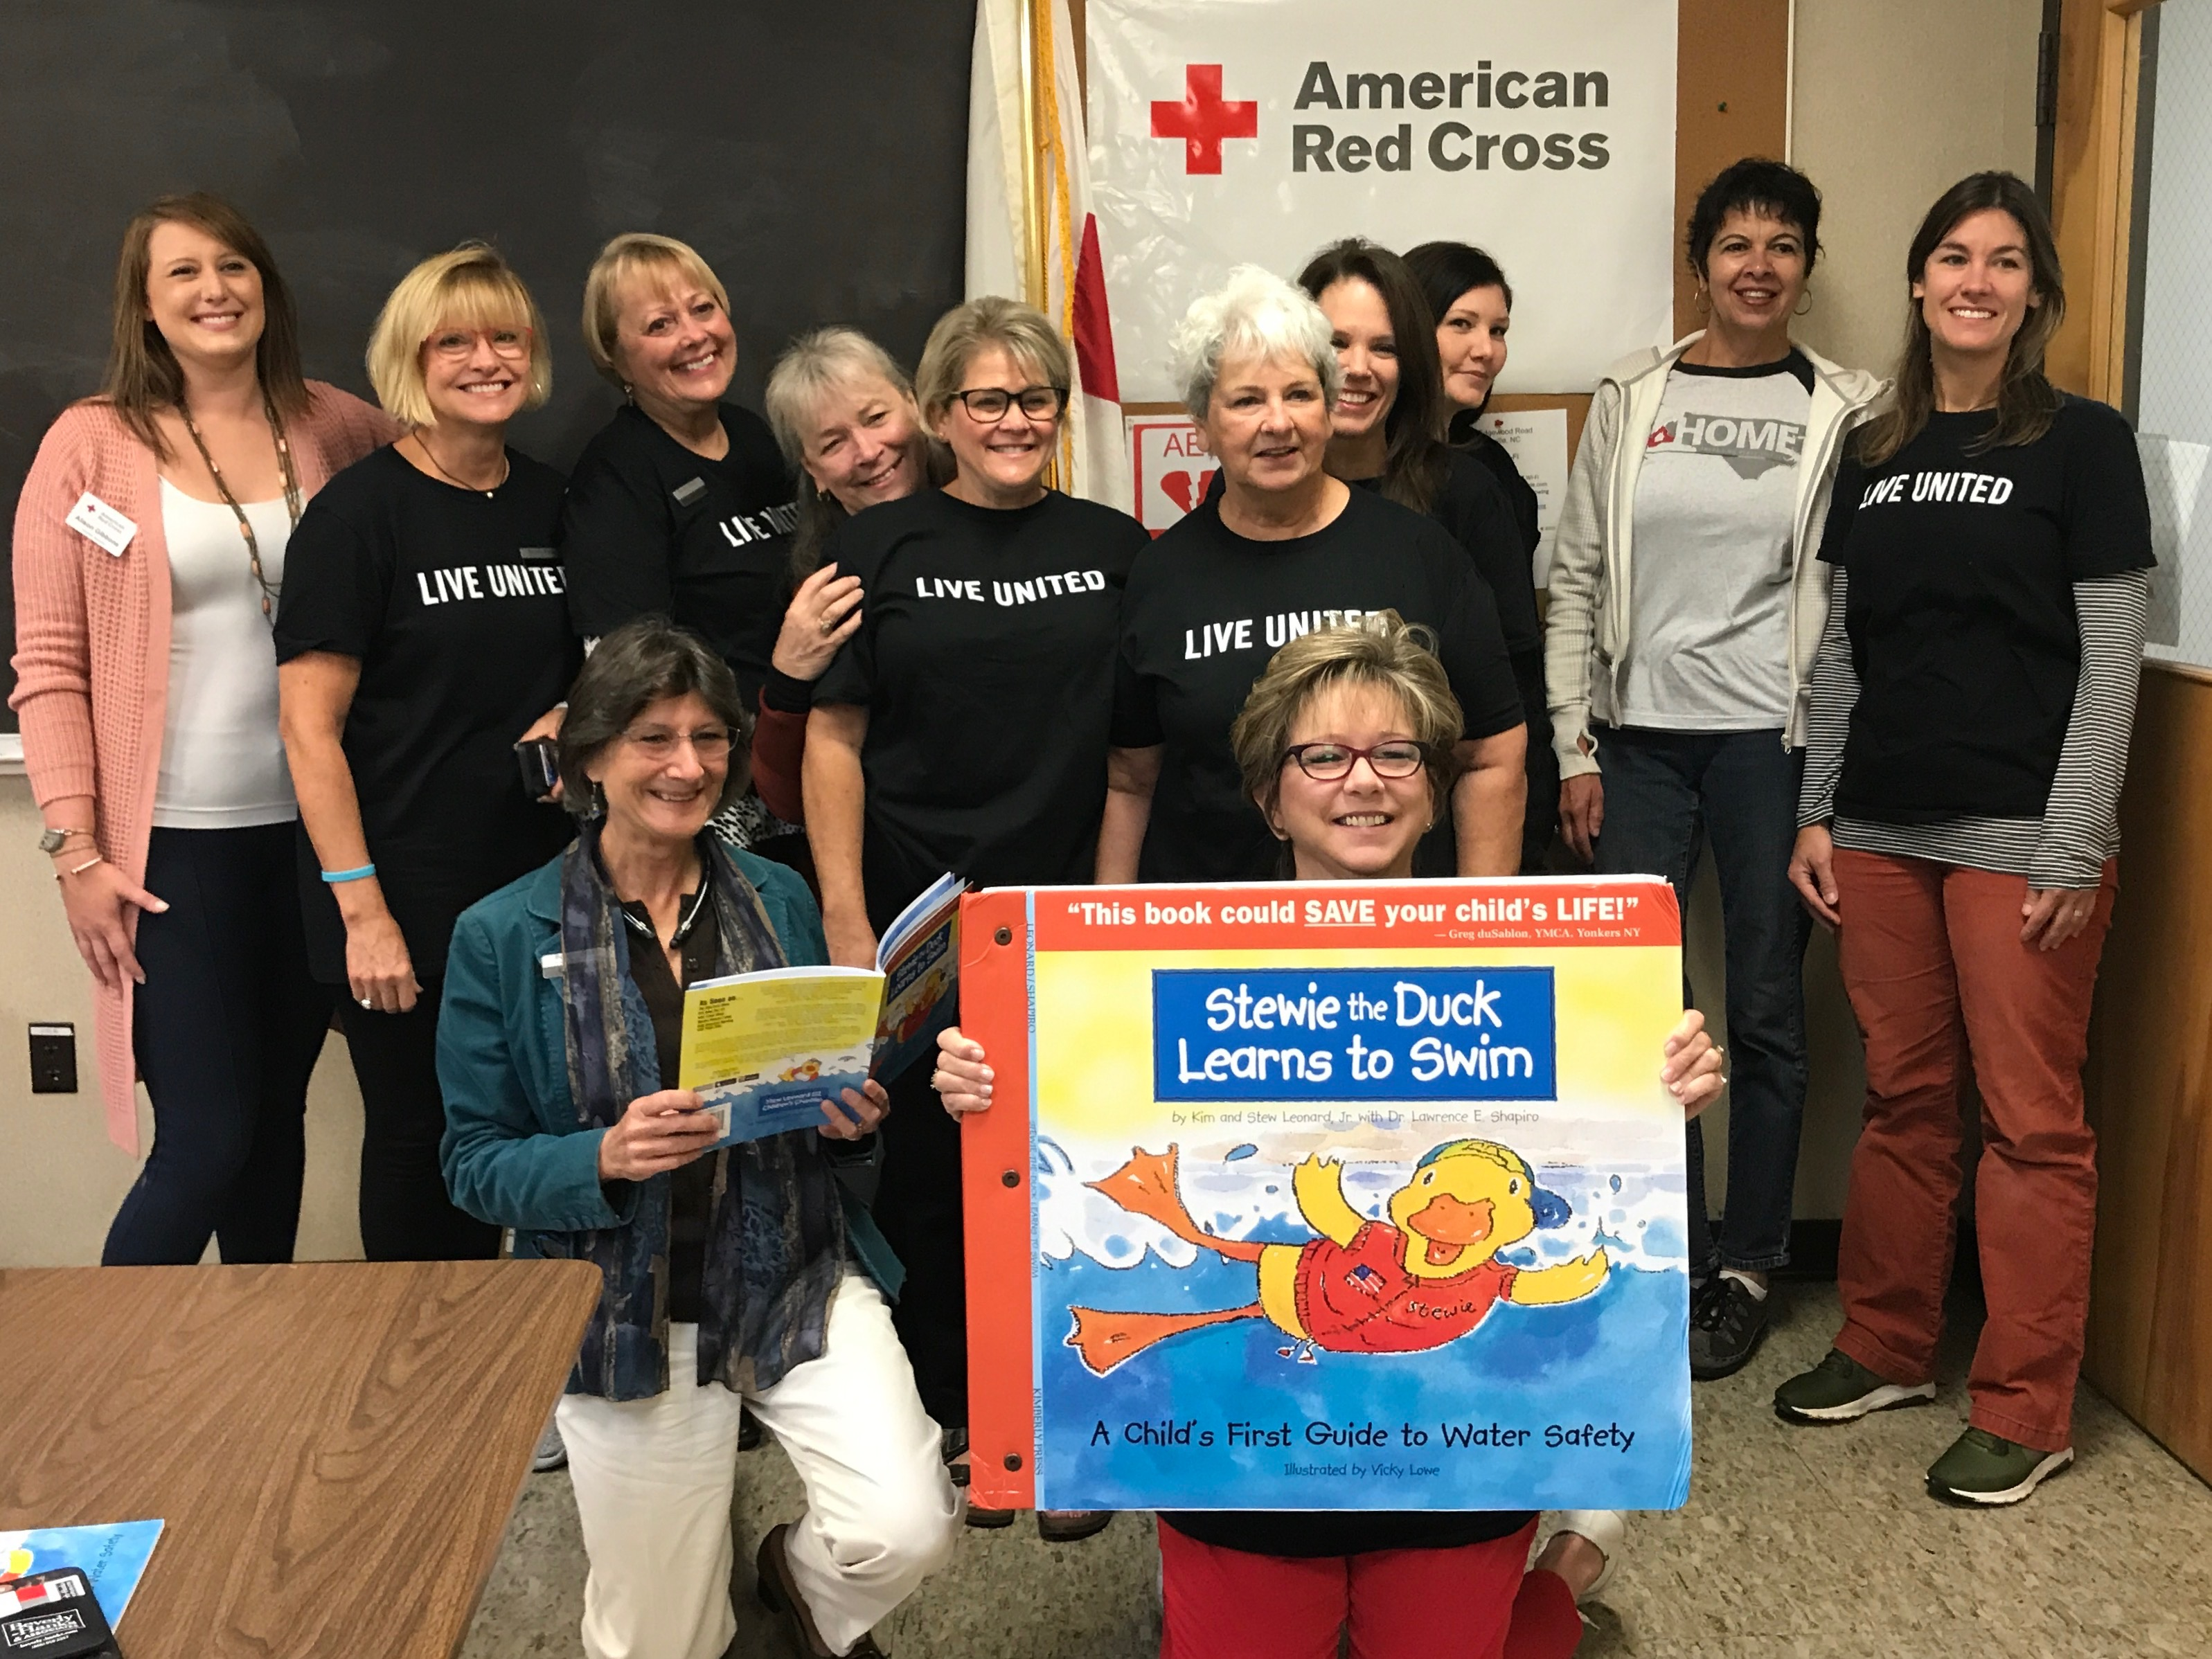 These women from Beverly Hanks spent their morning learning to sing a swimming safety song and then got to perform for 2, 3 and 4 year olds at First Presbyterian's childcare center.